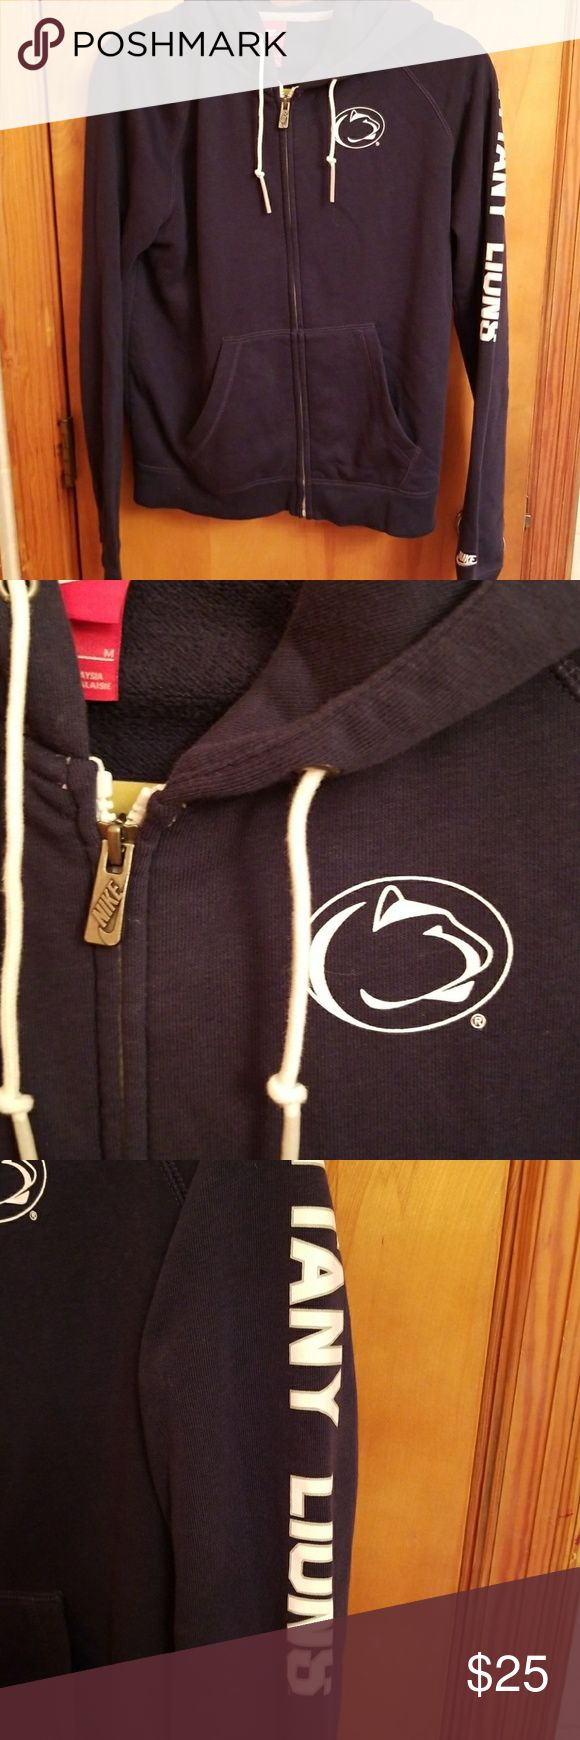 Penn State Jacket Size M NWOT Navy zip up jacket with hood Nike brand PSU logo 2 front pickets 80% Cotton 20% Polyester  Machine wash cold tumble dry low  Price firm unless bundle  Never worn! Nike Jackets & Coats